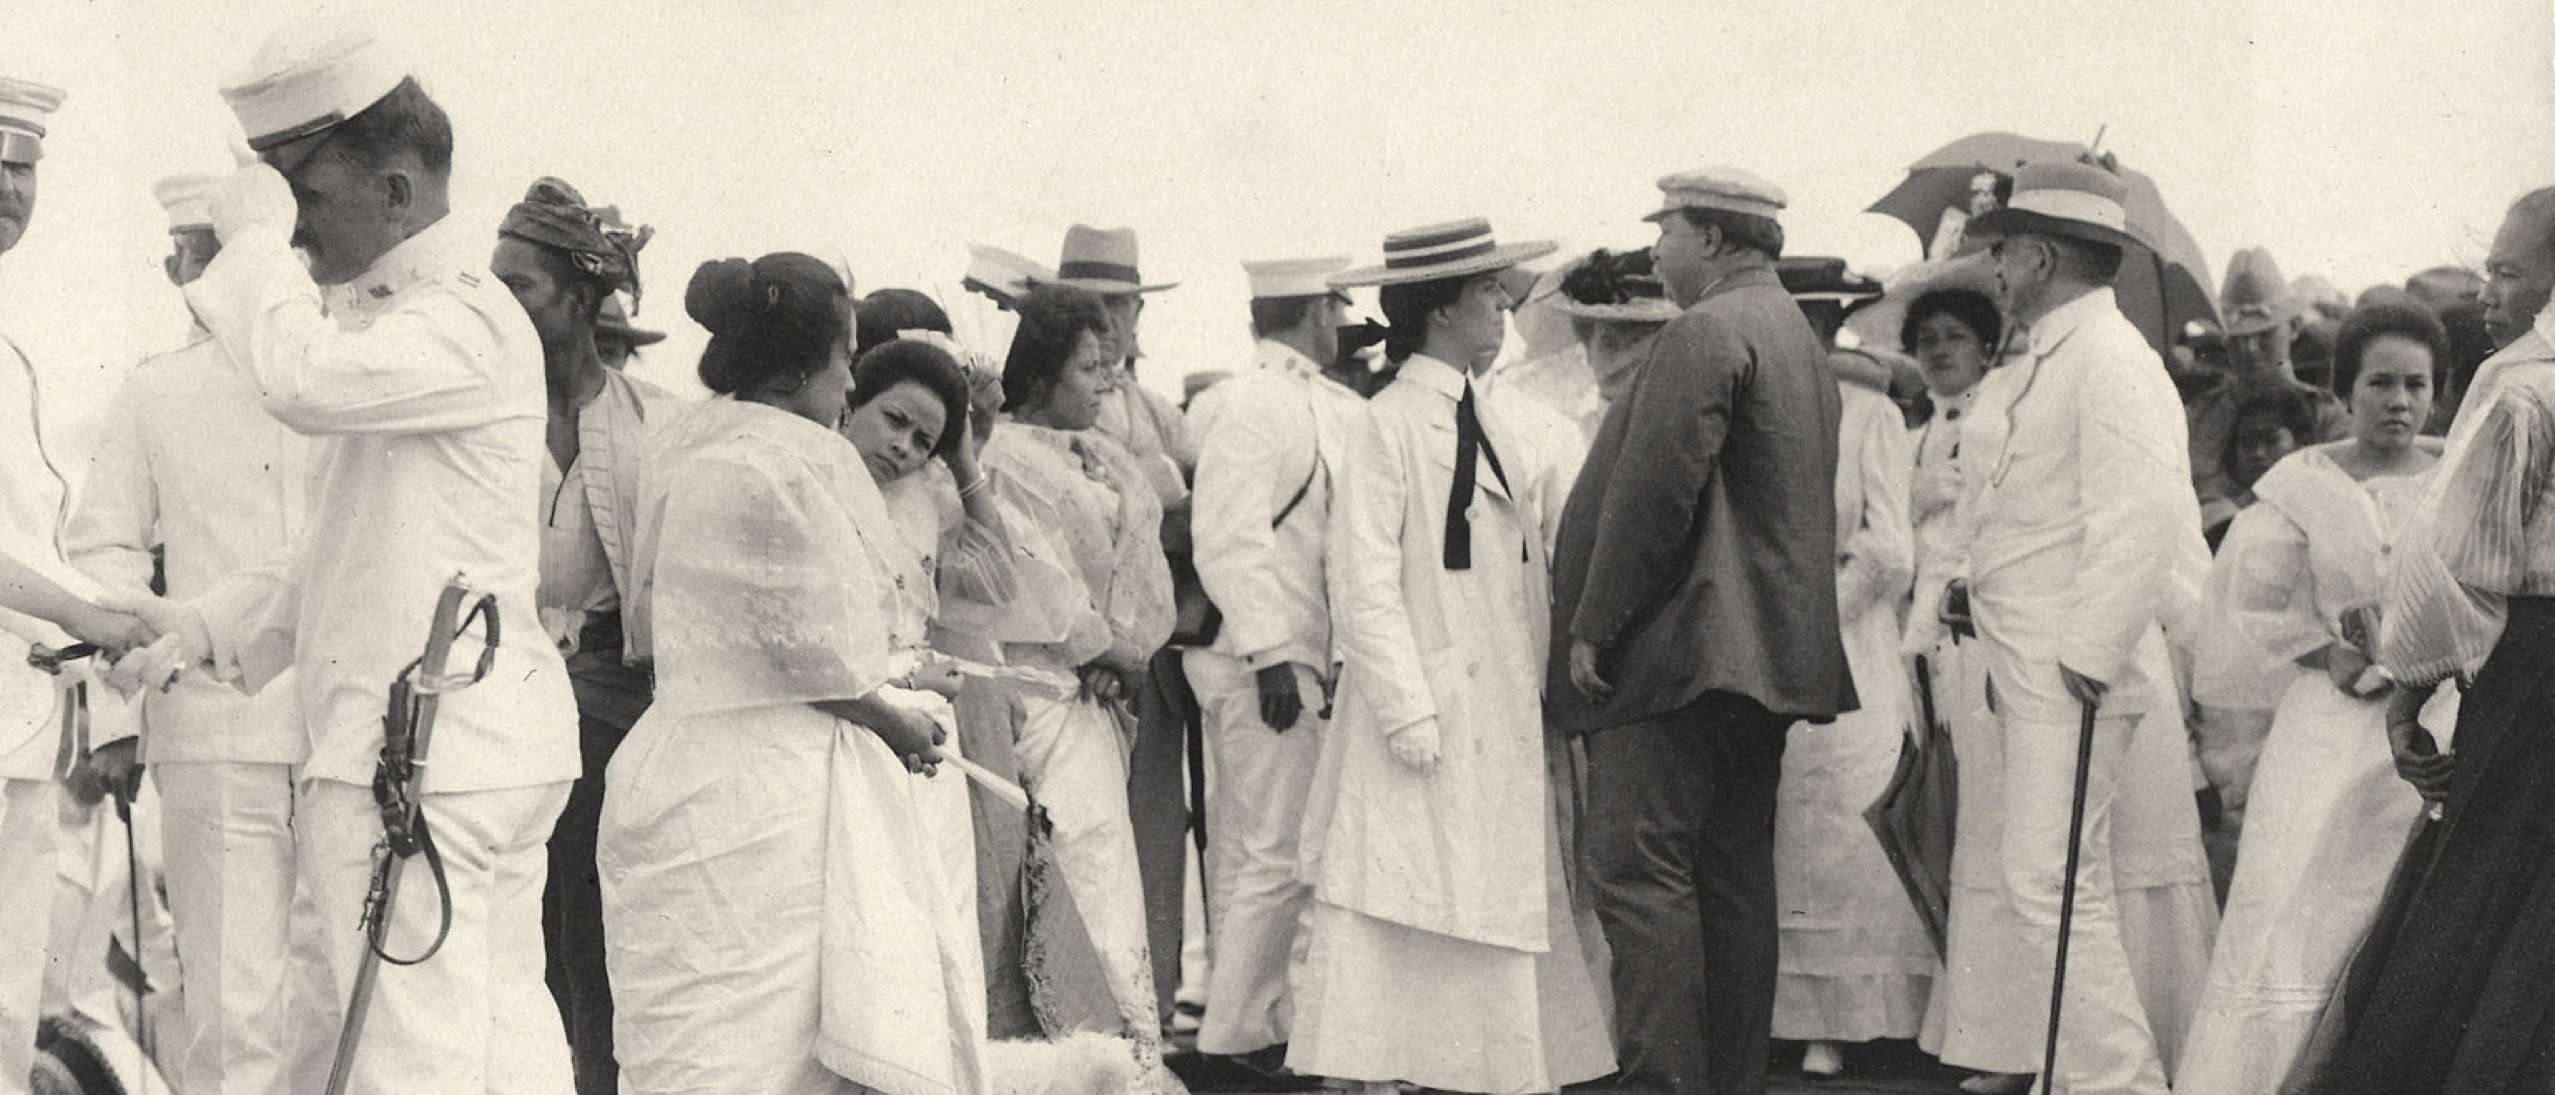 Alice Roosevelt and William H. Taft in the Philippines. August, 1905